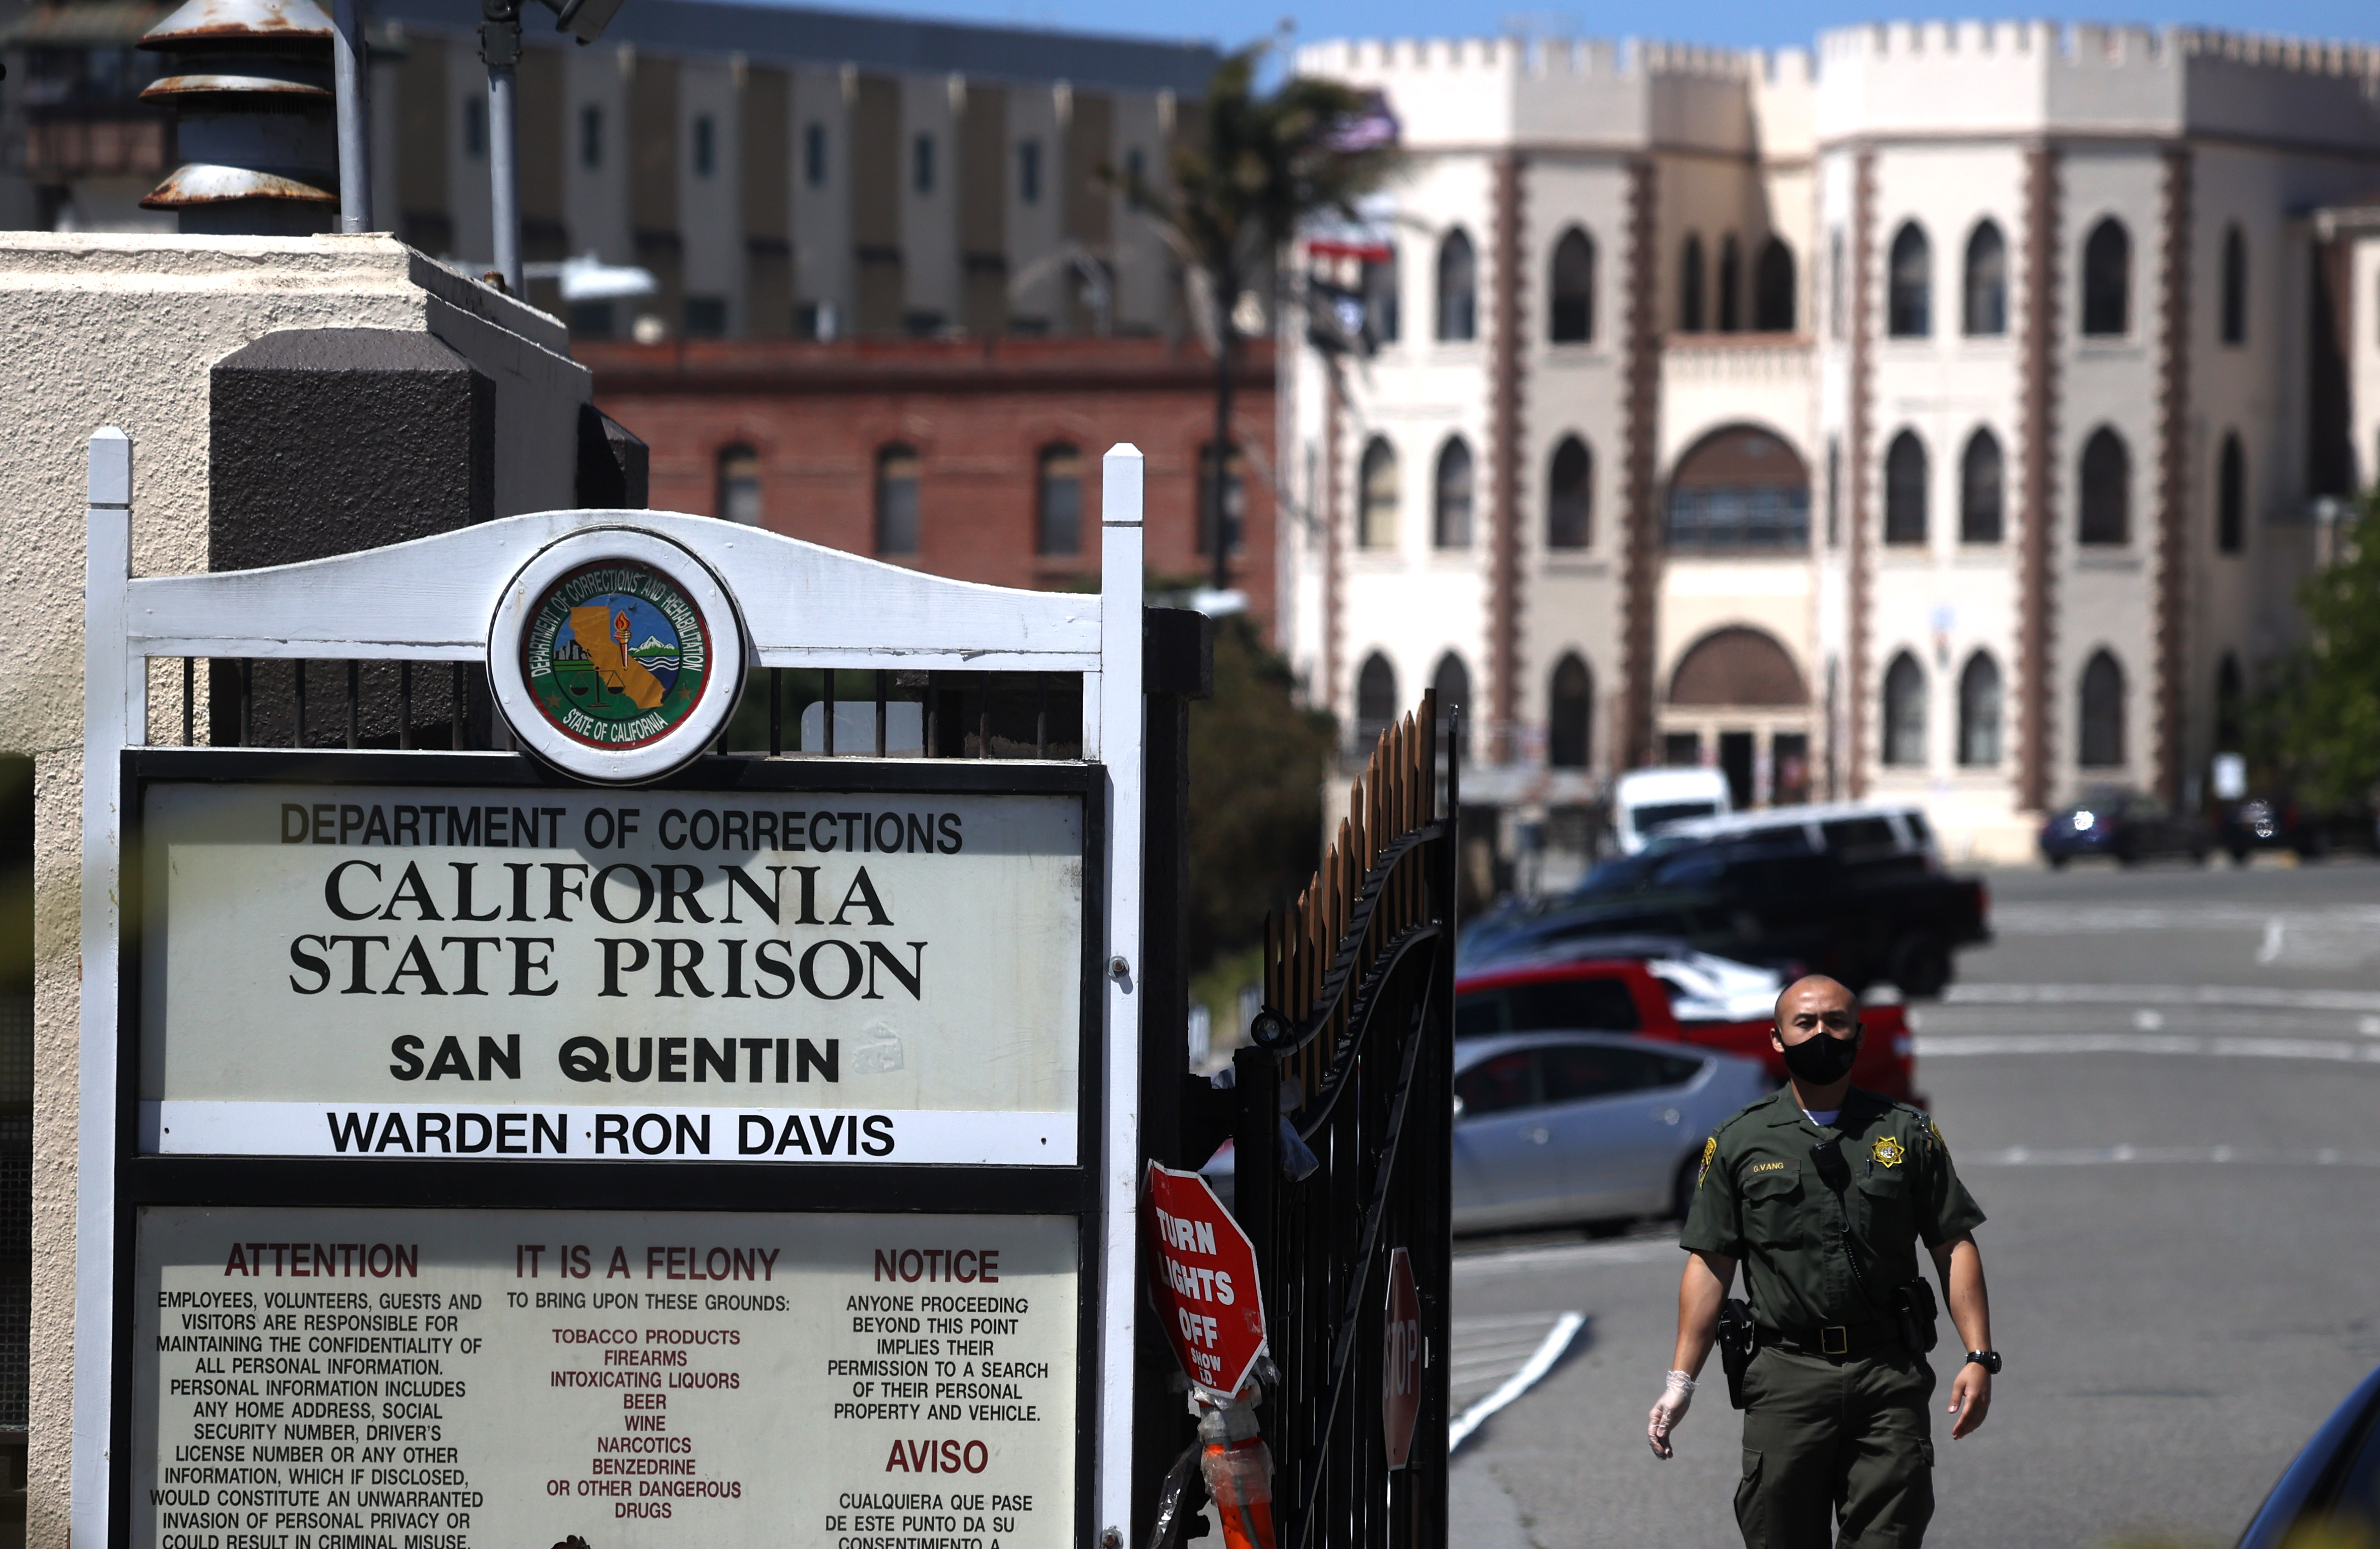 A California Department of Corrections and Rehabilitation (CDCR) officer wears a protective mask as he stands guard at the front gate of San Quentin State Prison on June 29, 2020 in San Quentin, California. (Justin Sullivan/Getty Images)